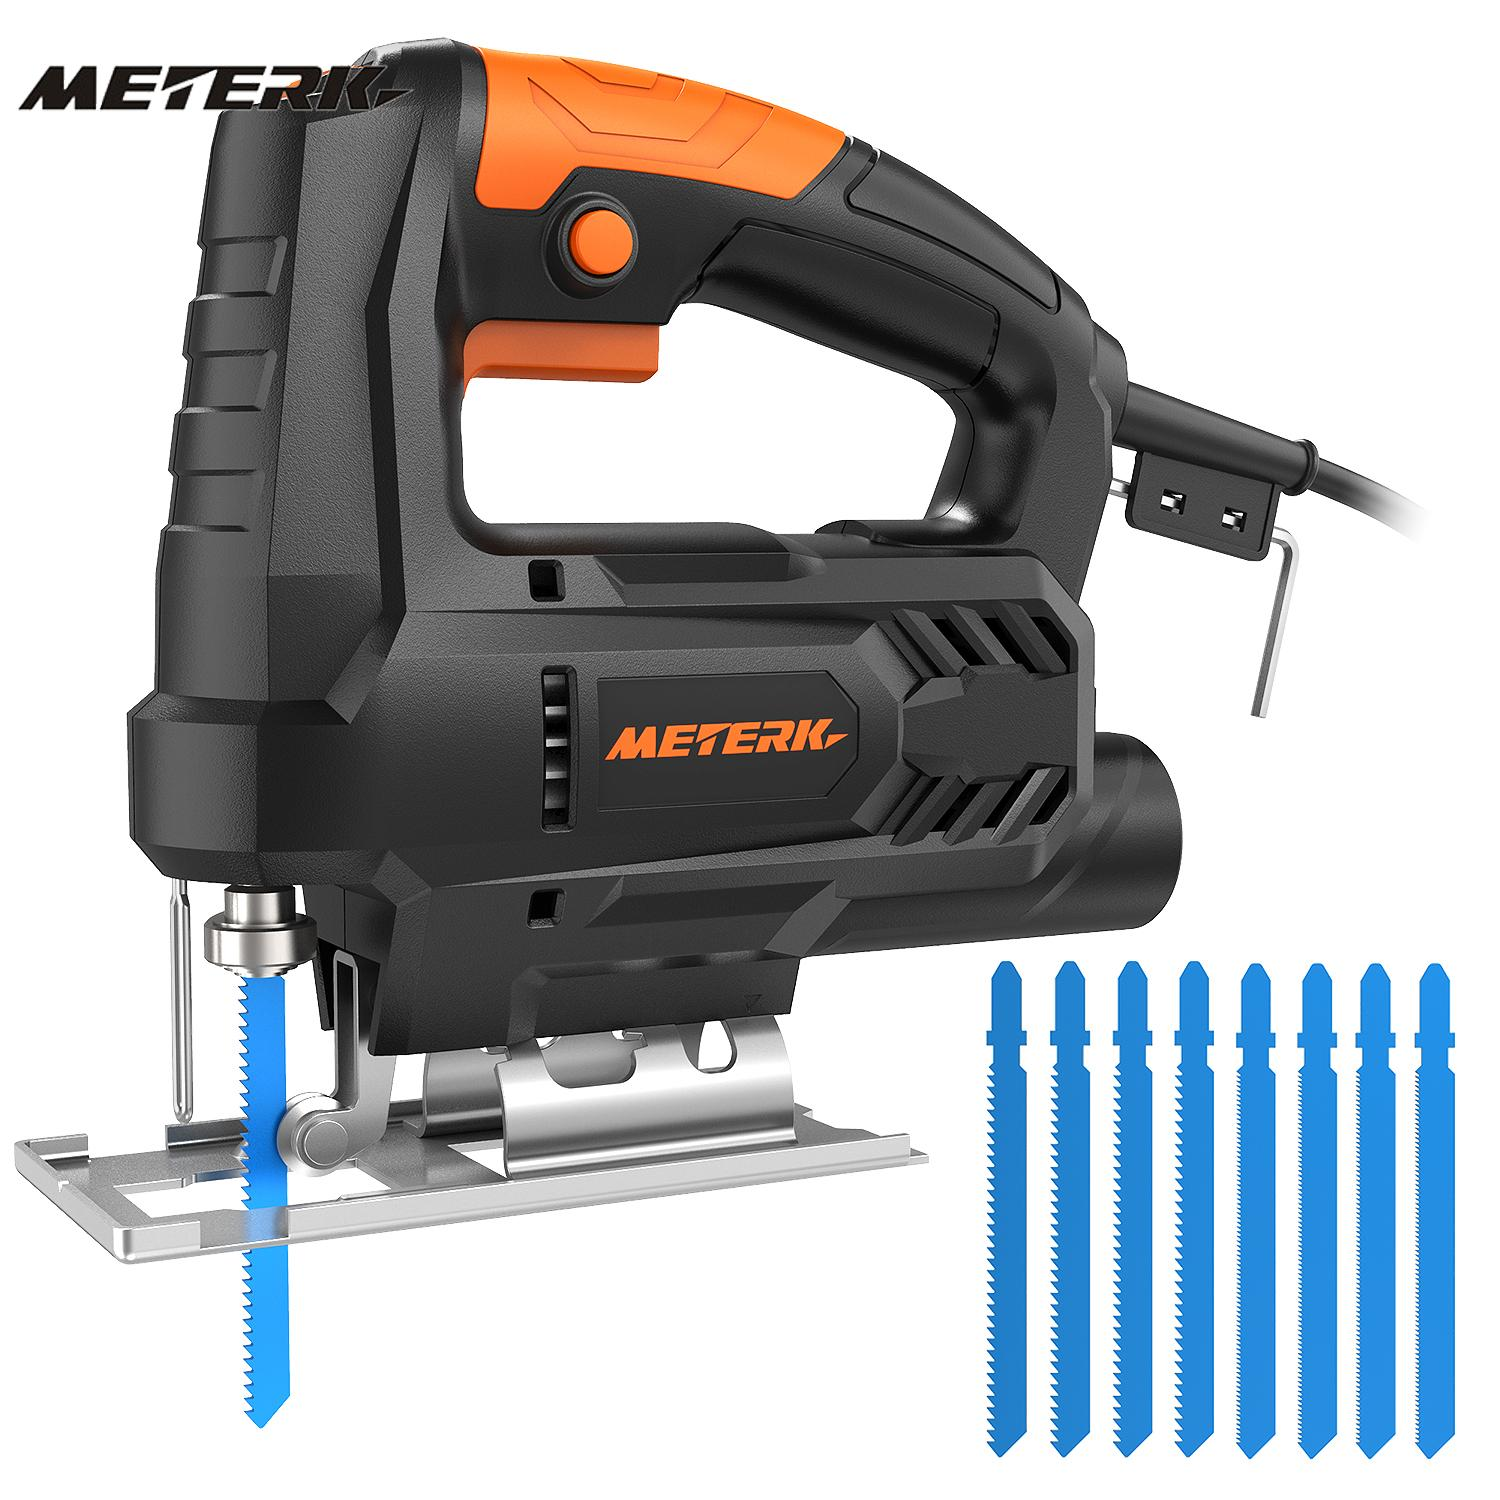 Meterk Electric Jig Saw for metal wood Multi functional Cutter with 4pcs Wood Saw Web 4pcs